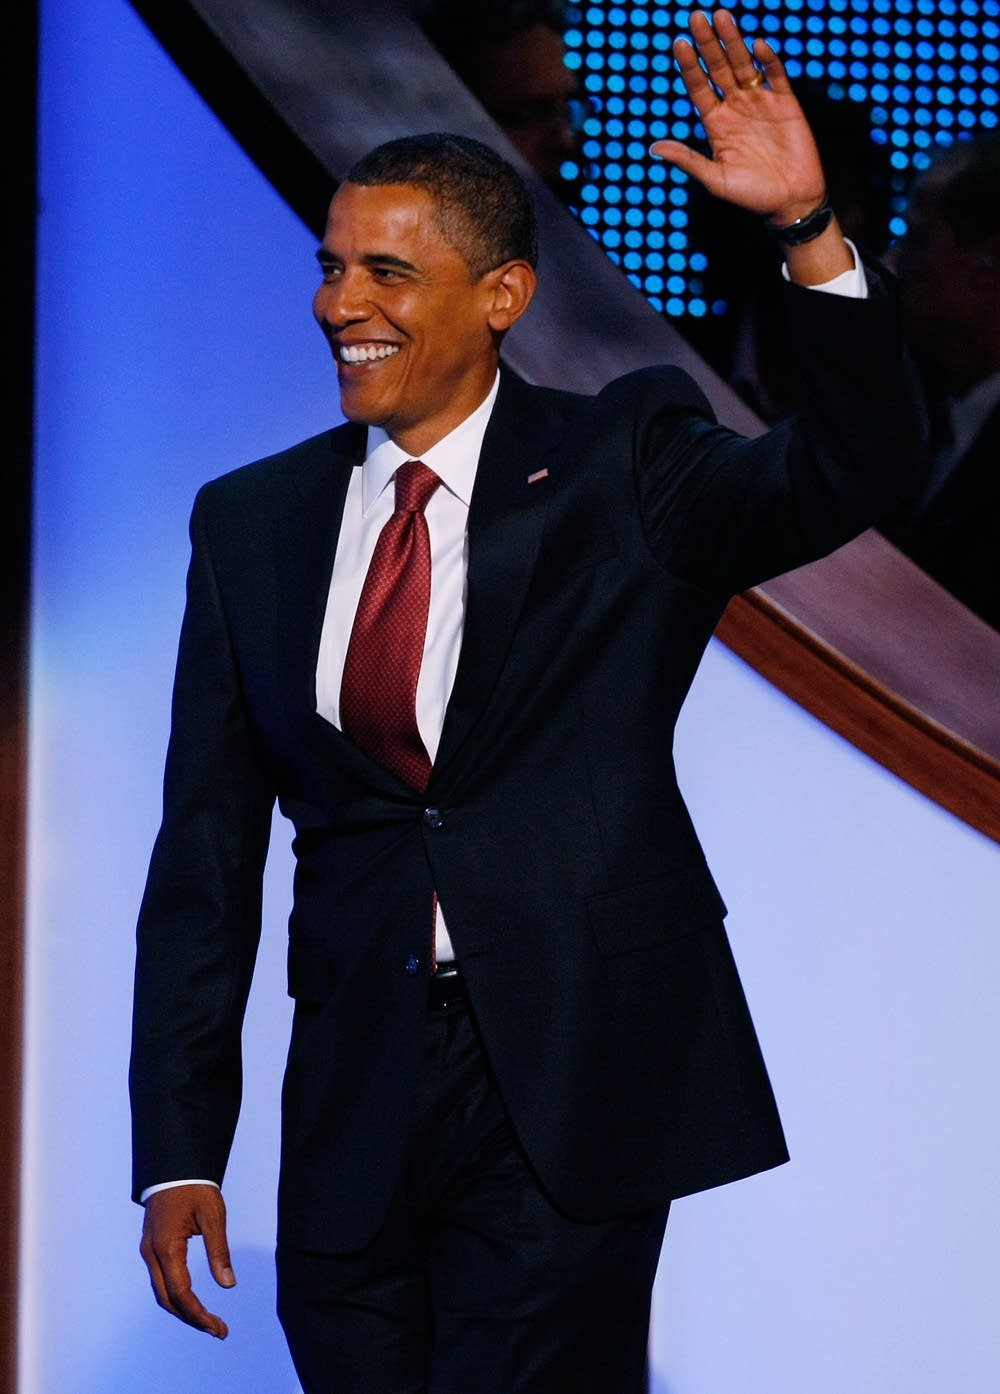 Barack Obama takes the stage at the DNC